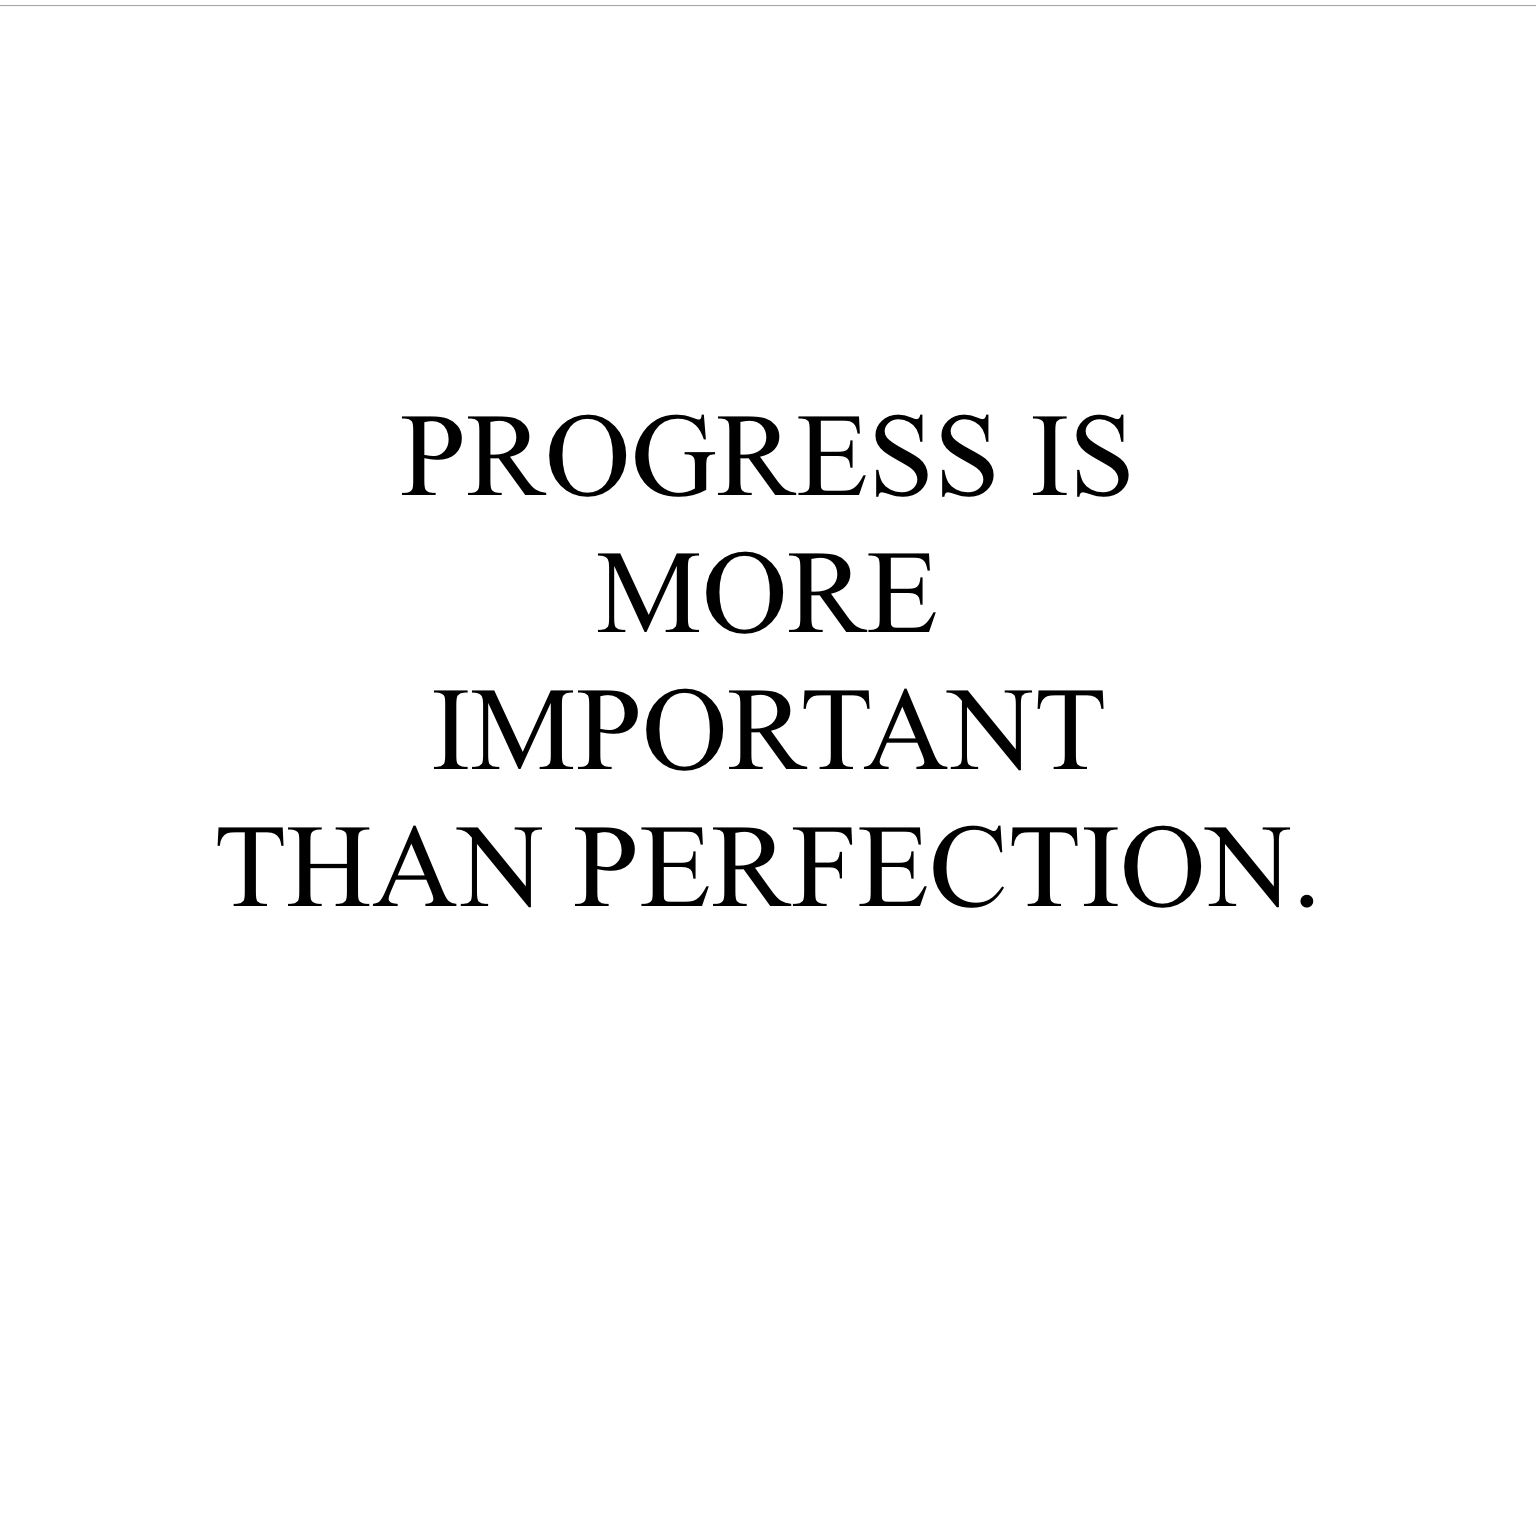 Persistence Motivational Quotes: Progress Is More Important Than Perfection.